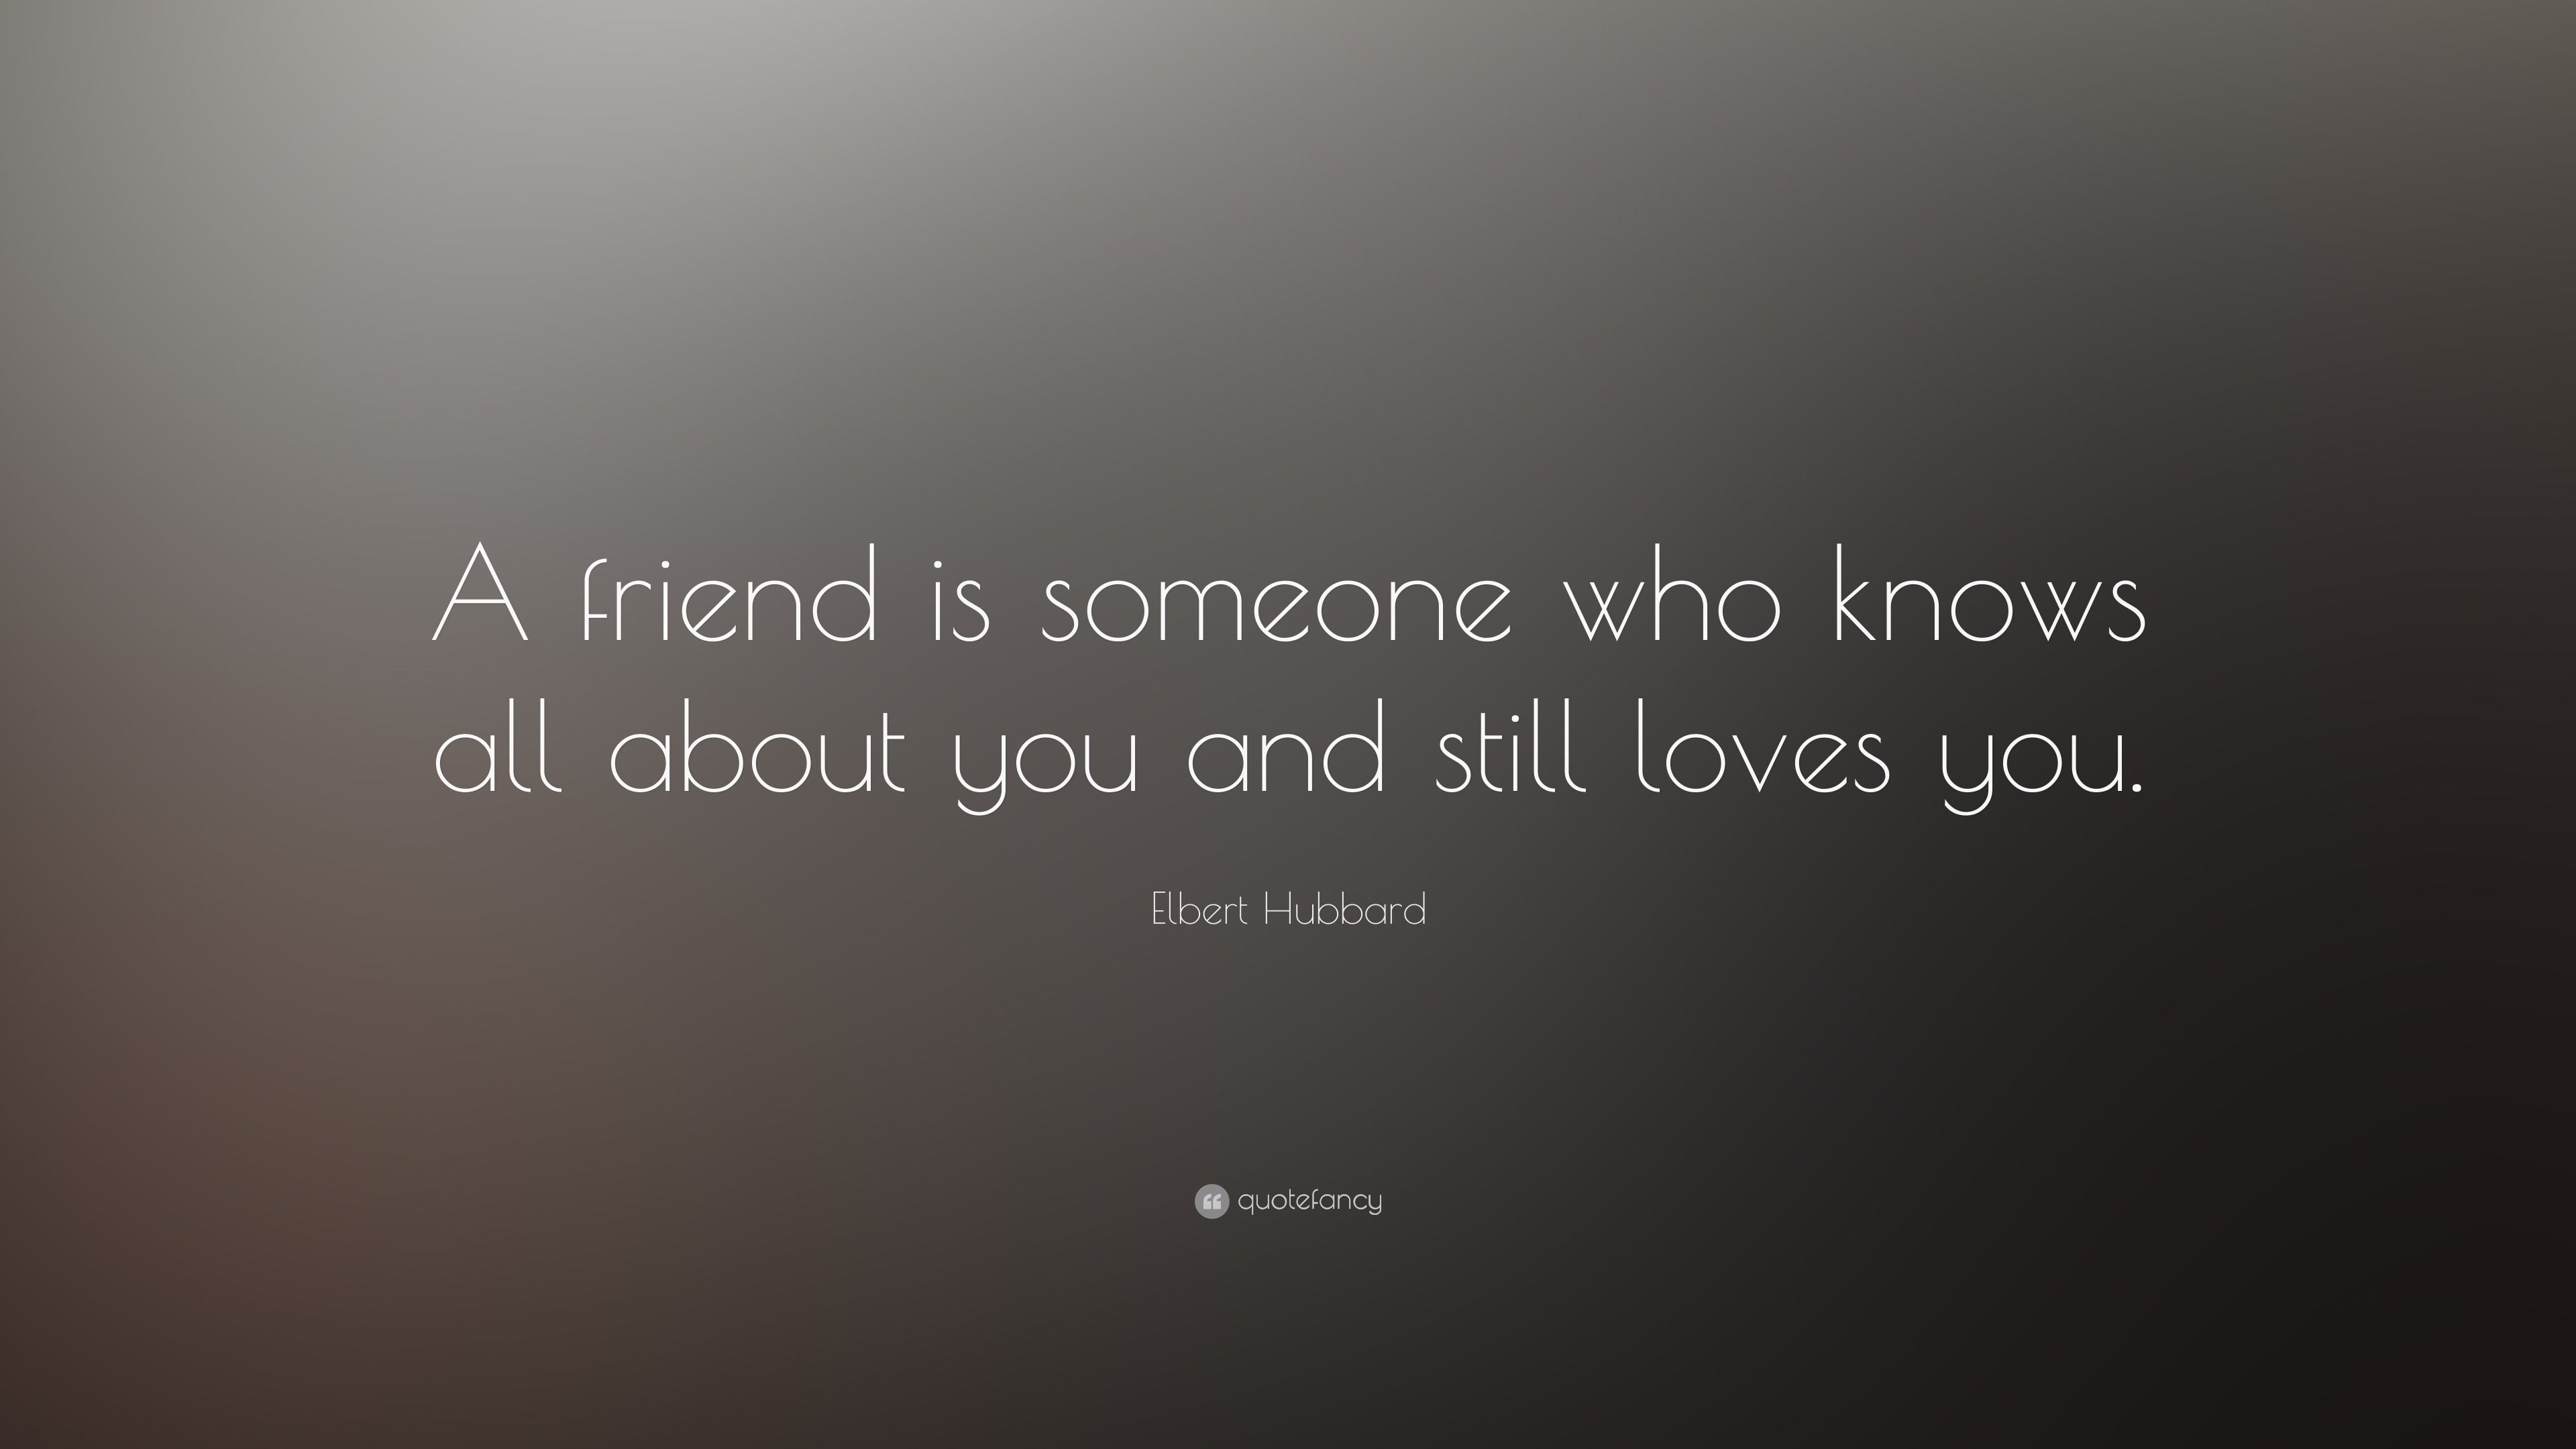 All About Friendship Quotes Friendship Quotes 21 Wallpapers  Quotefancy